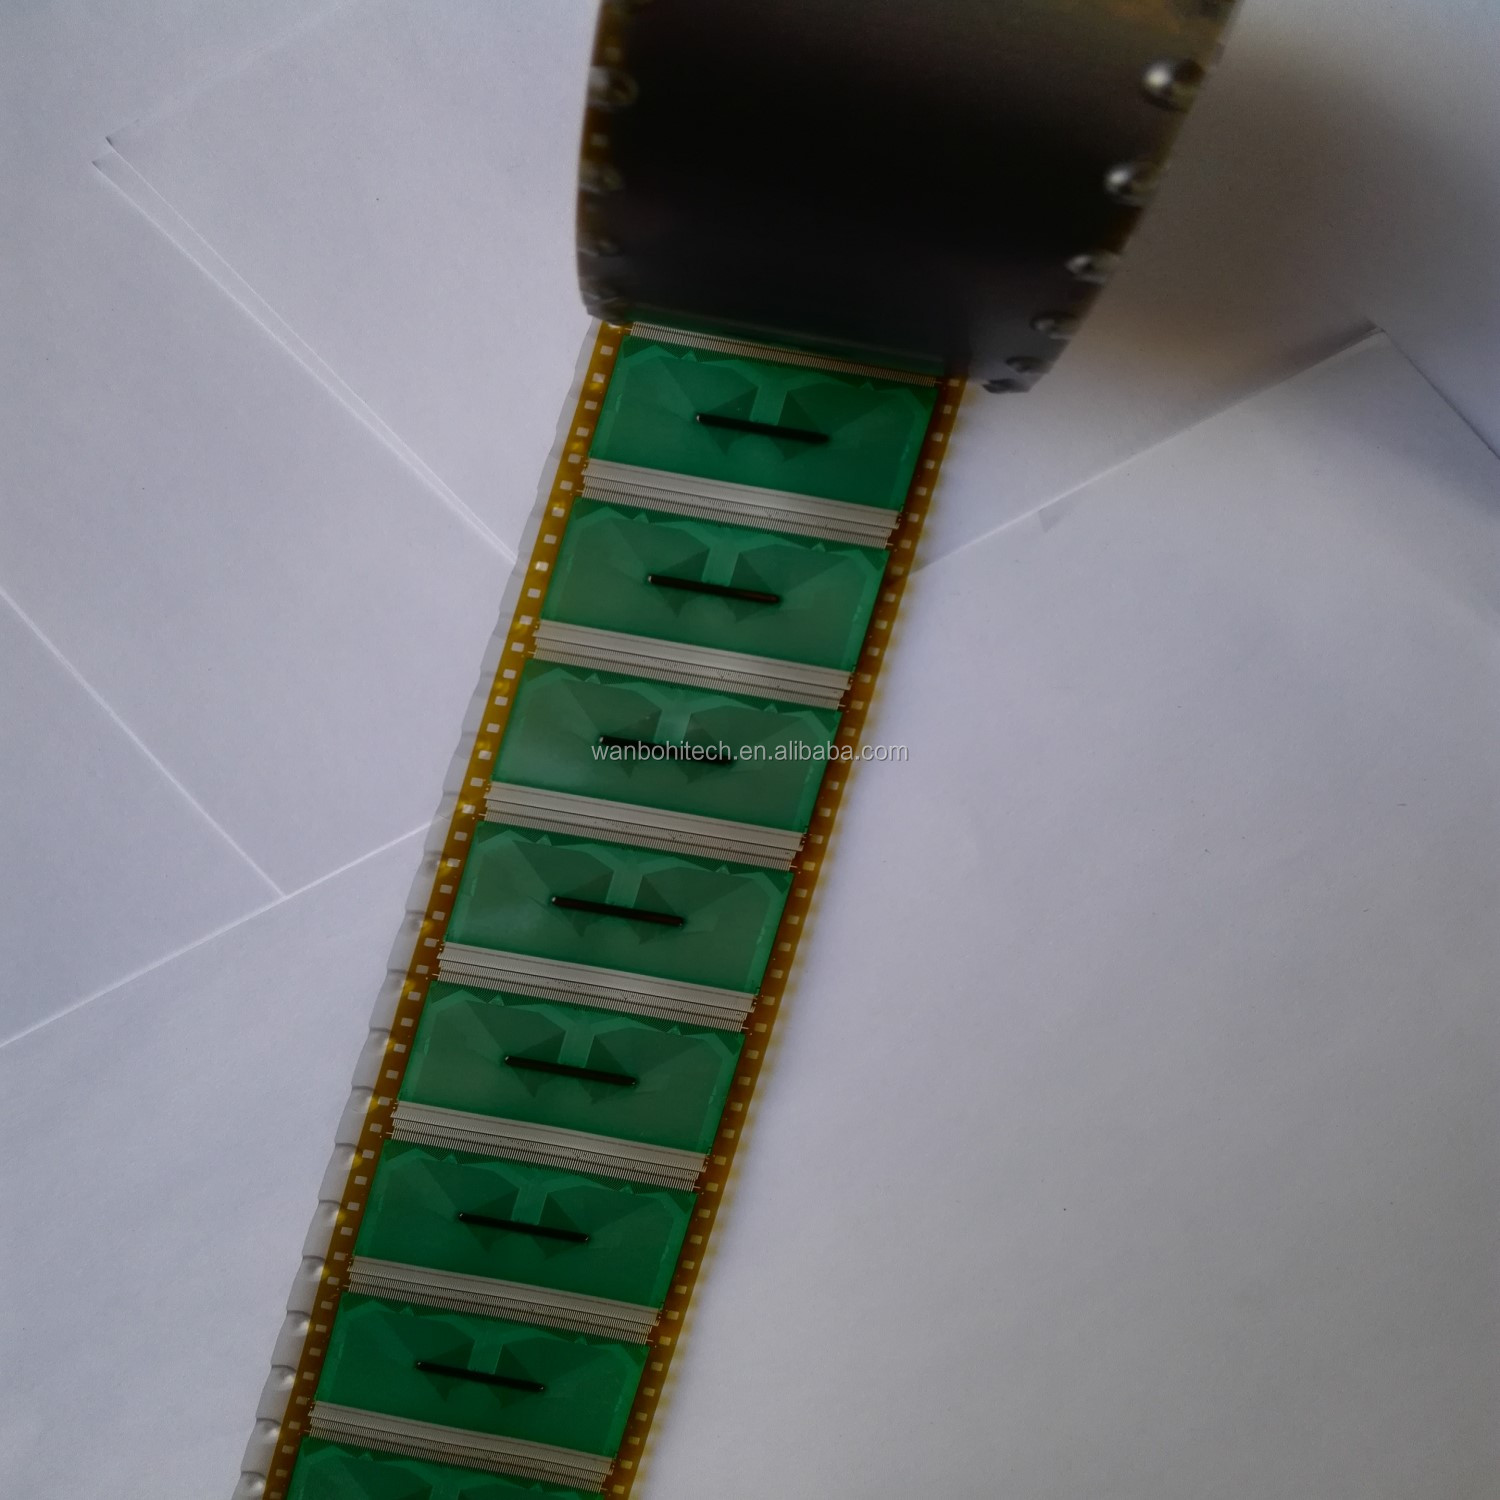 MT3166BVD TAB COF FOG COG FPC LCD module for bonding Samsung LG BOE CHIMEI Sharp lcd opencell